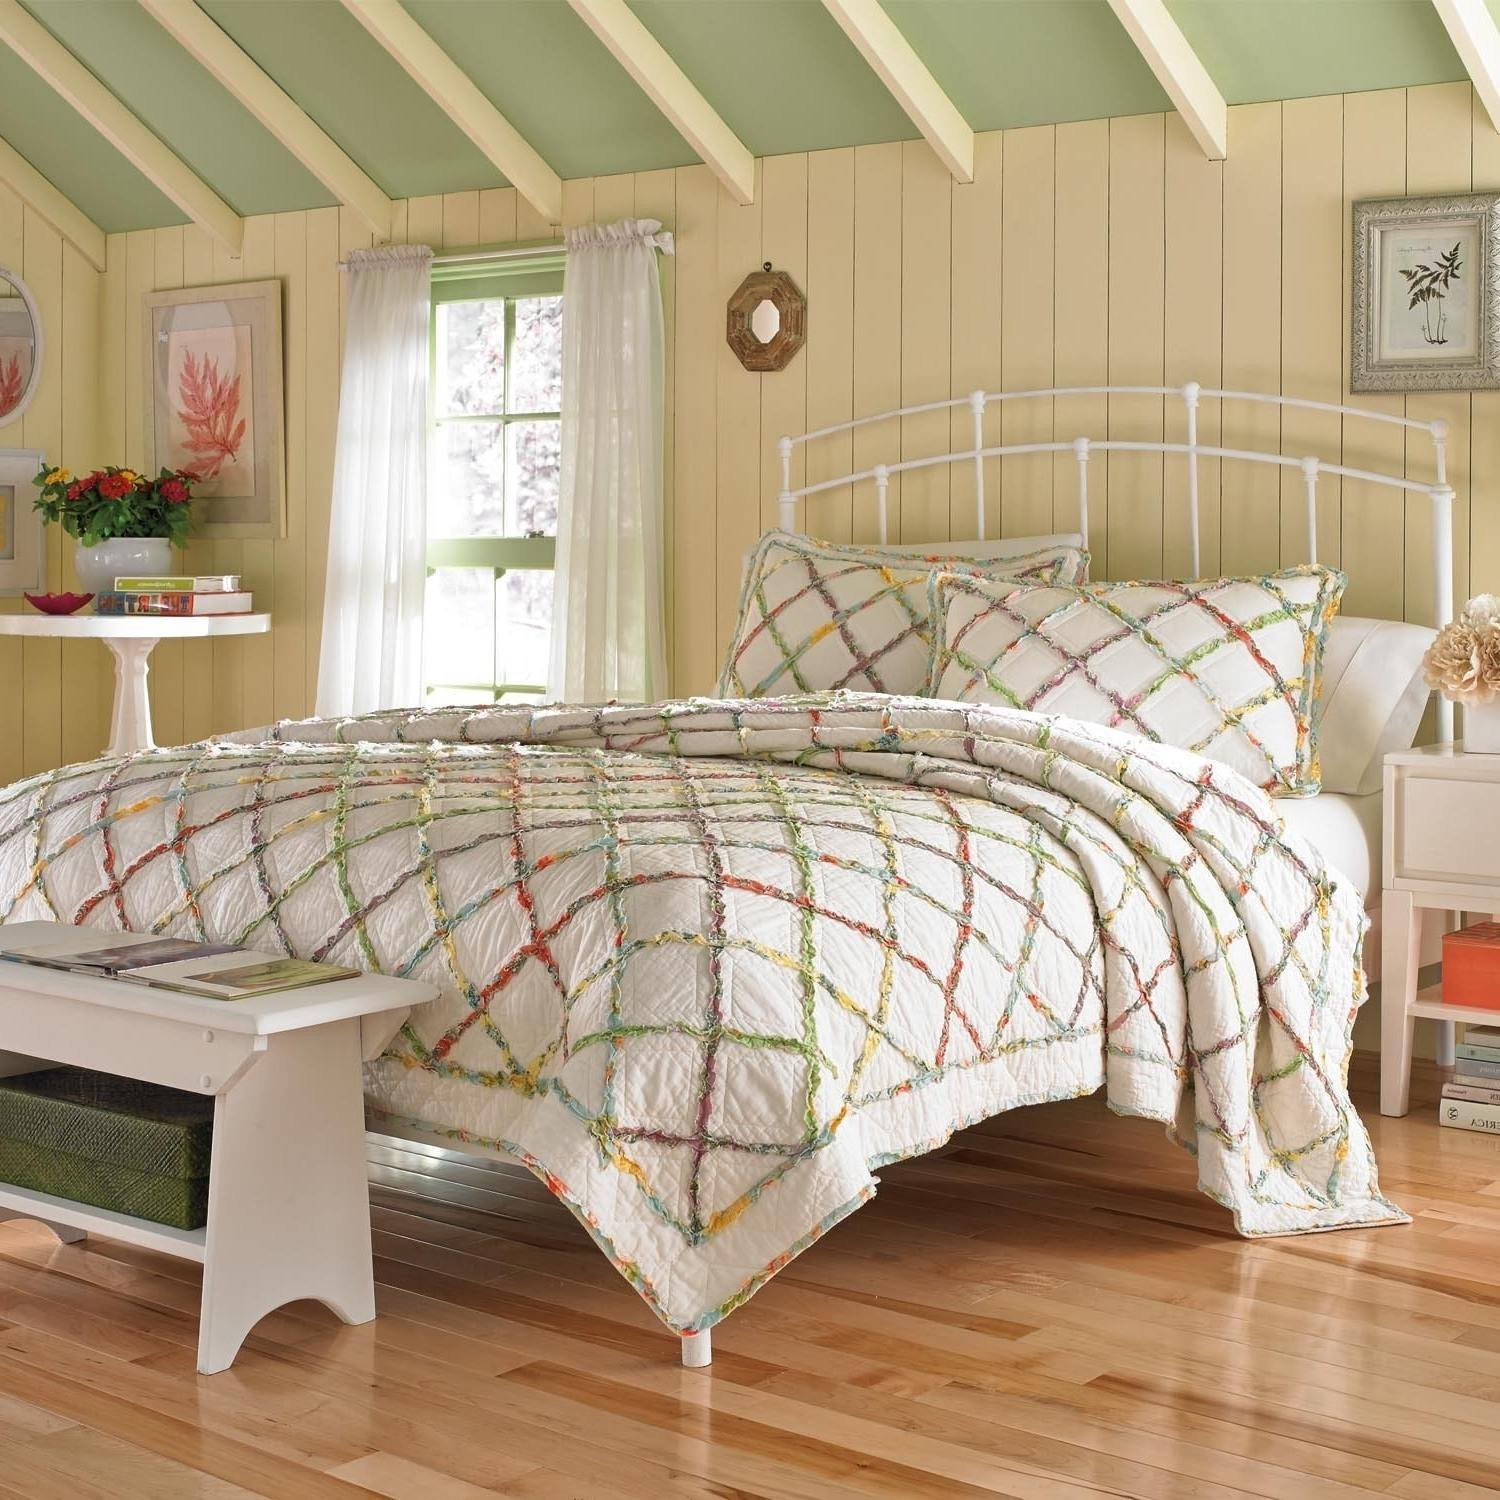 1 Piece Beautiful Ruffled Rainbow White King Quilt, Floral Diamond Pattern Themed Bedding Green Red Blue Yellow Purple Garden Classic Country Chic Summer Spring Vintage Cottage Chic, Cotton